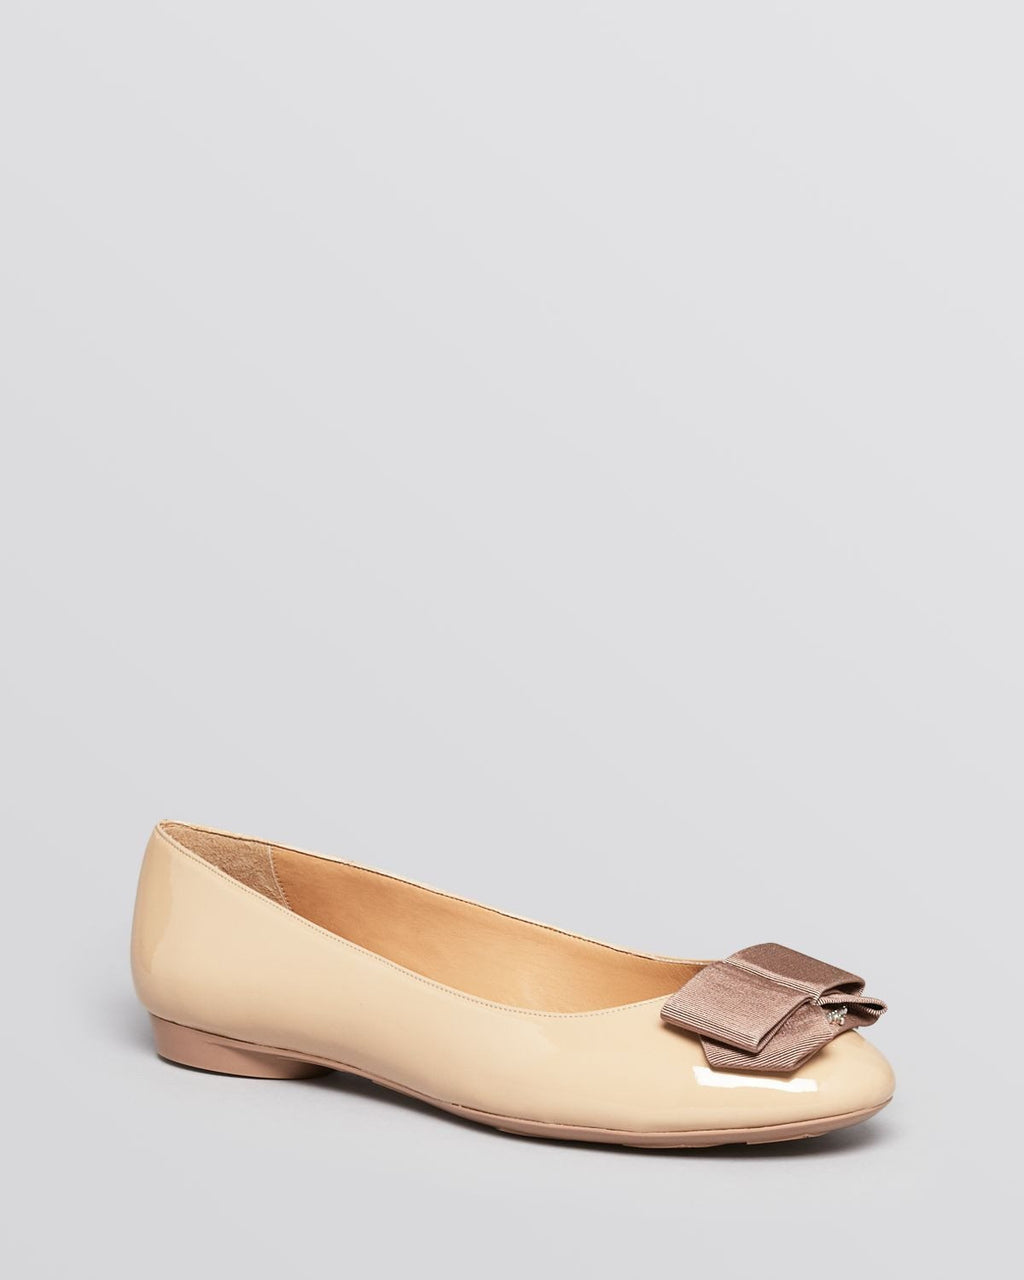 Ferragamo Women's Natural Ballet Flats My Cherie - Fashionbarn shop - 1